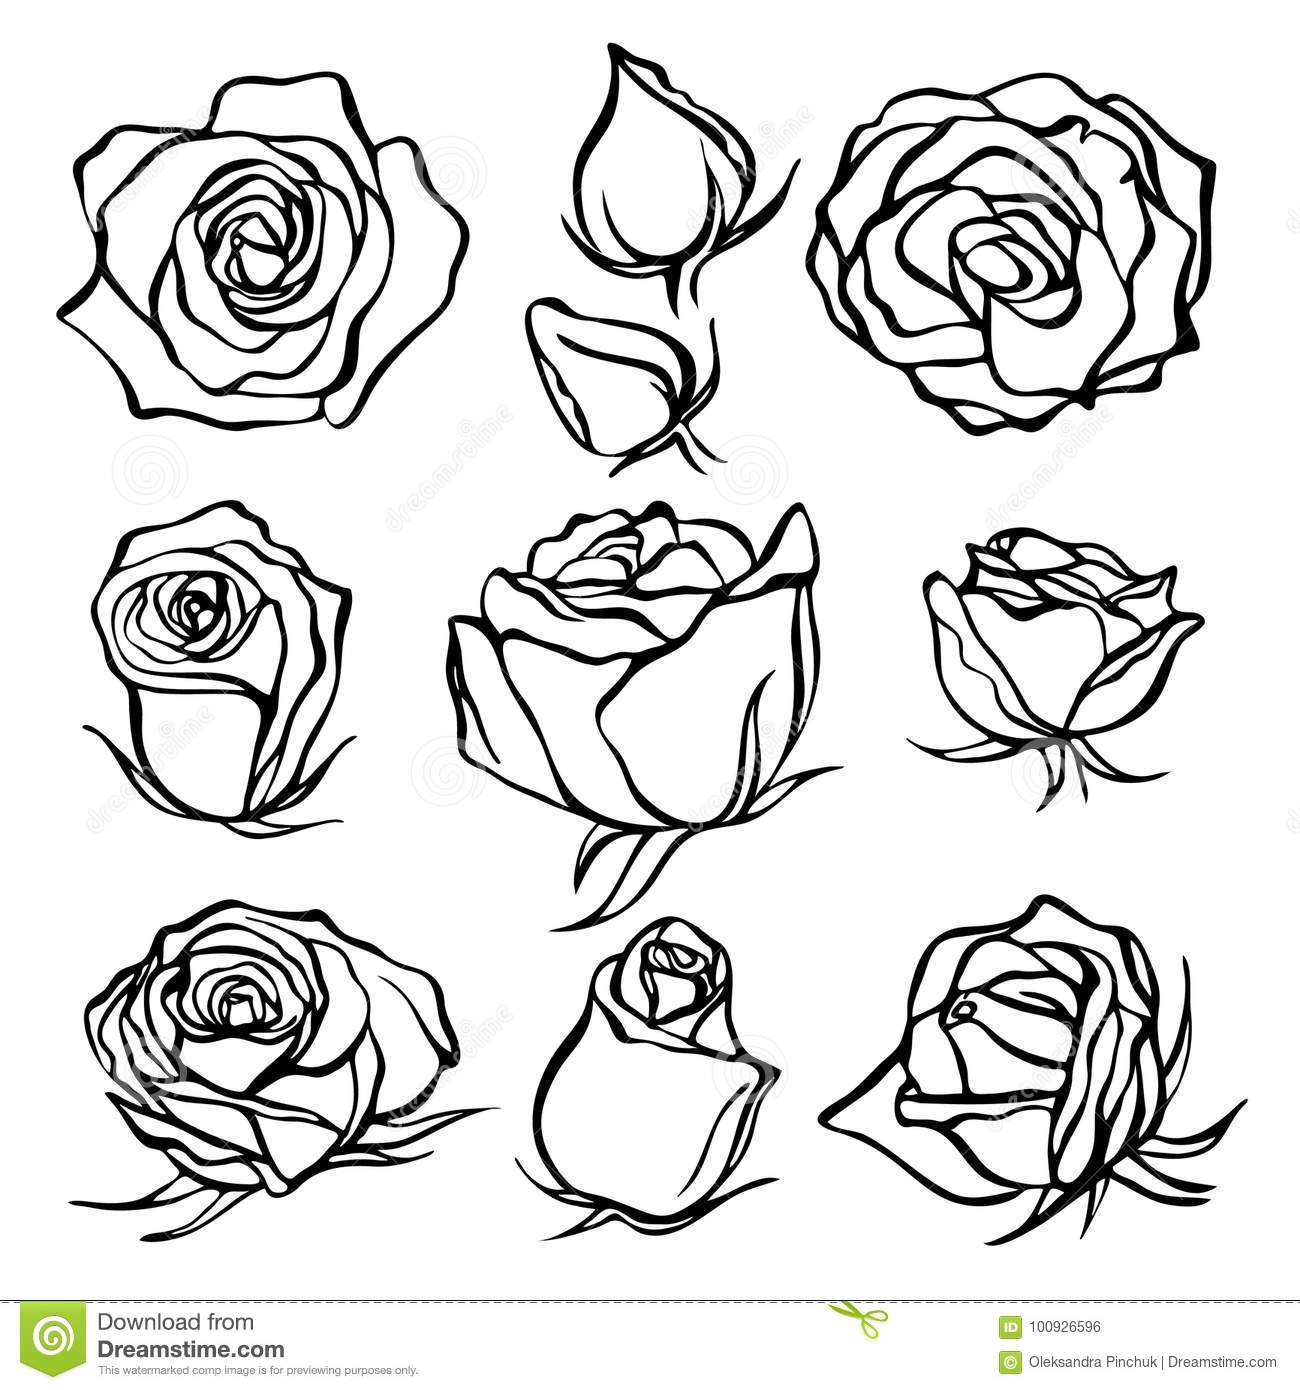 Sketch rose flower set pencil sketch flowers with leaves on stem